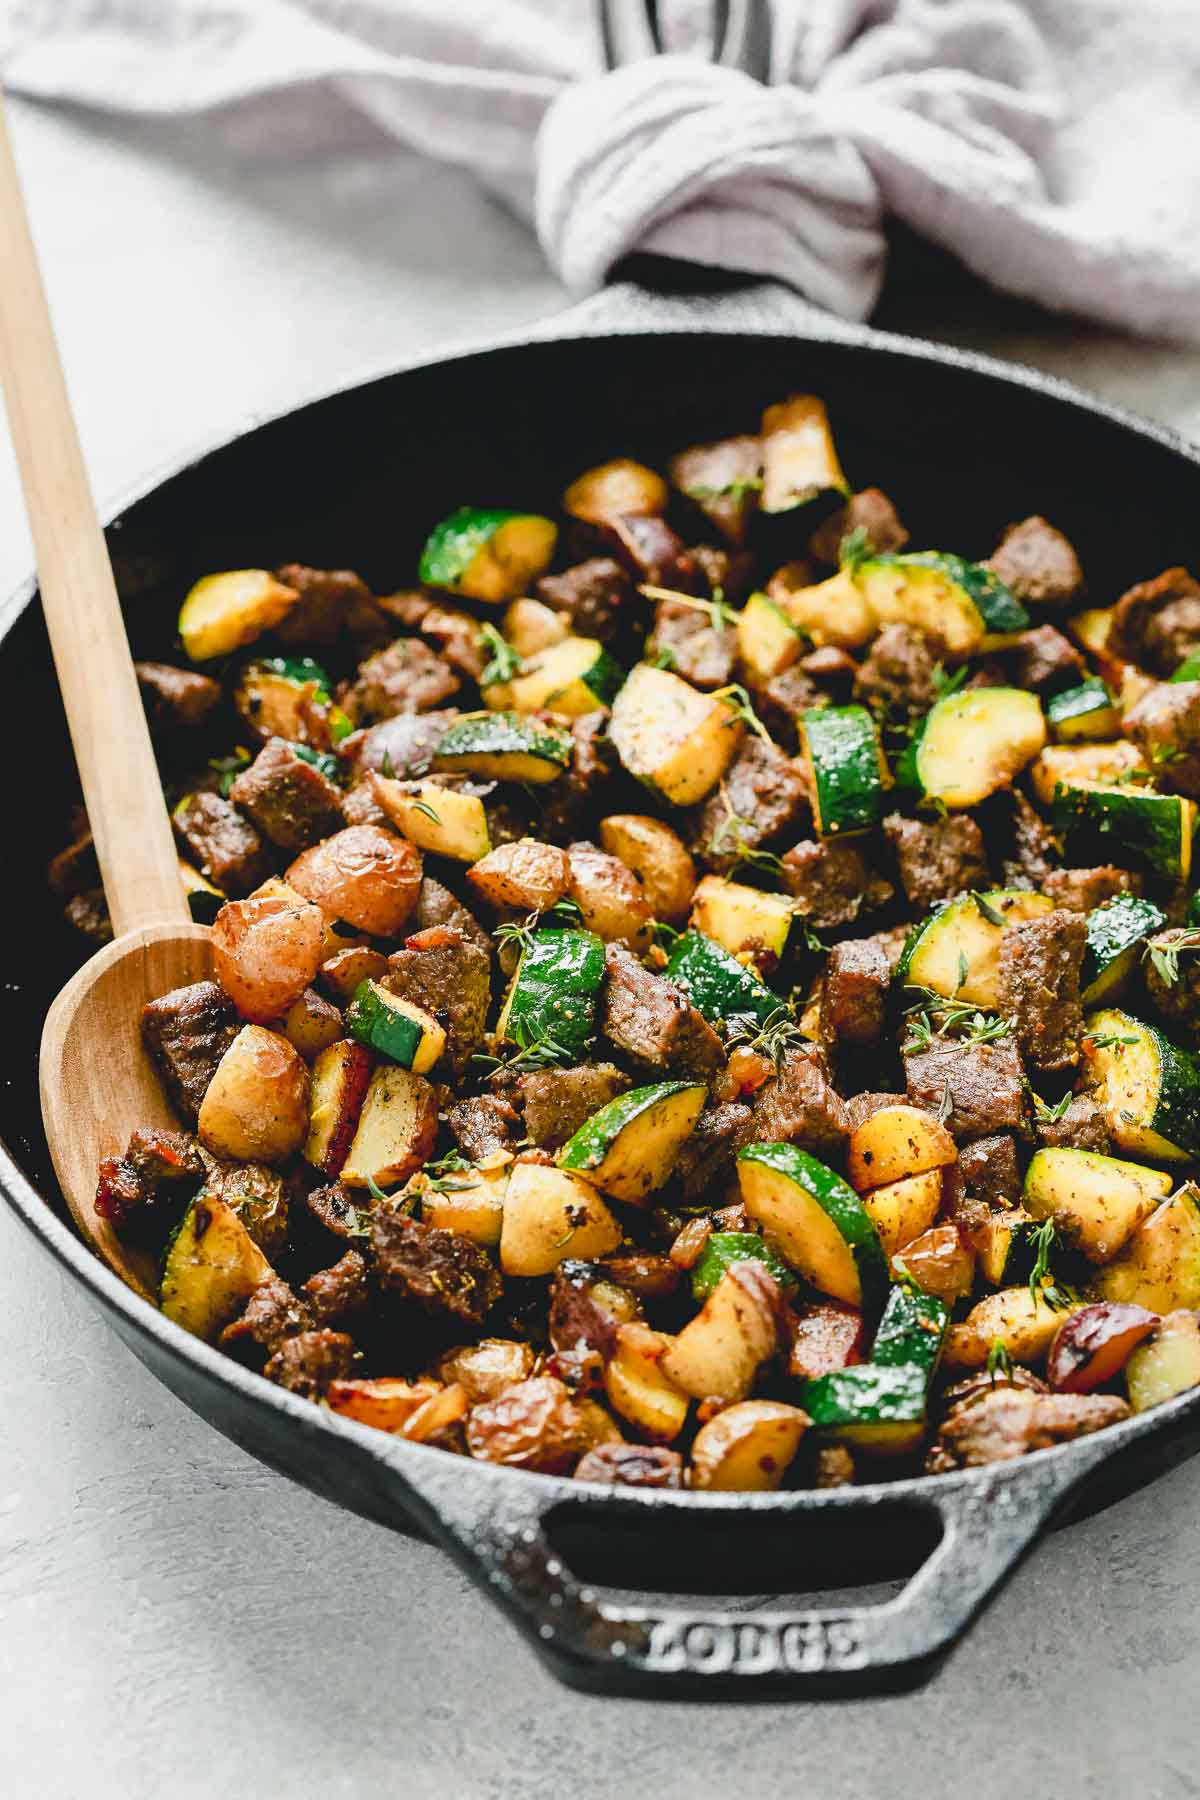 Beef and zucchini in a black cast iron with a spoon inside.